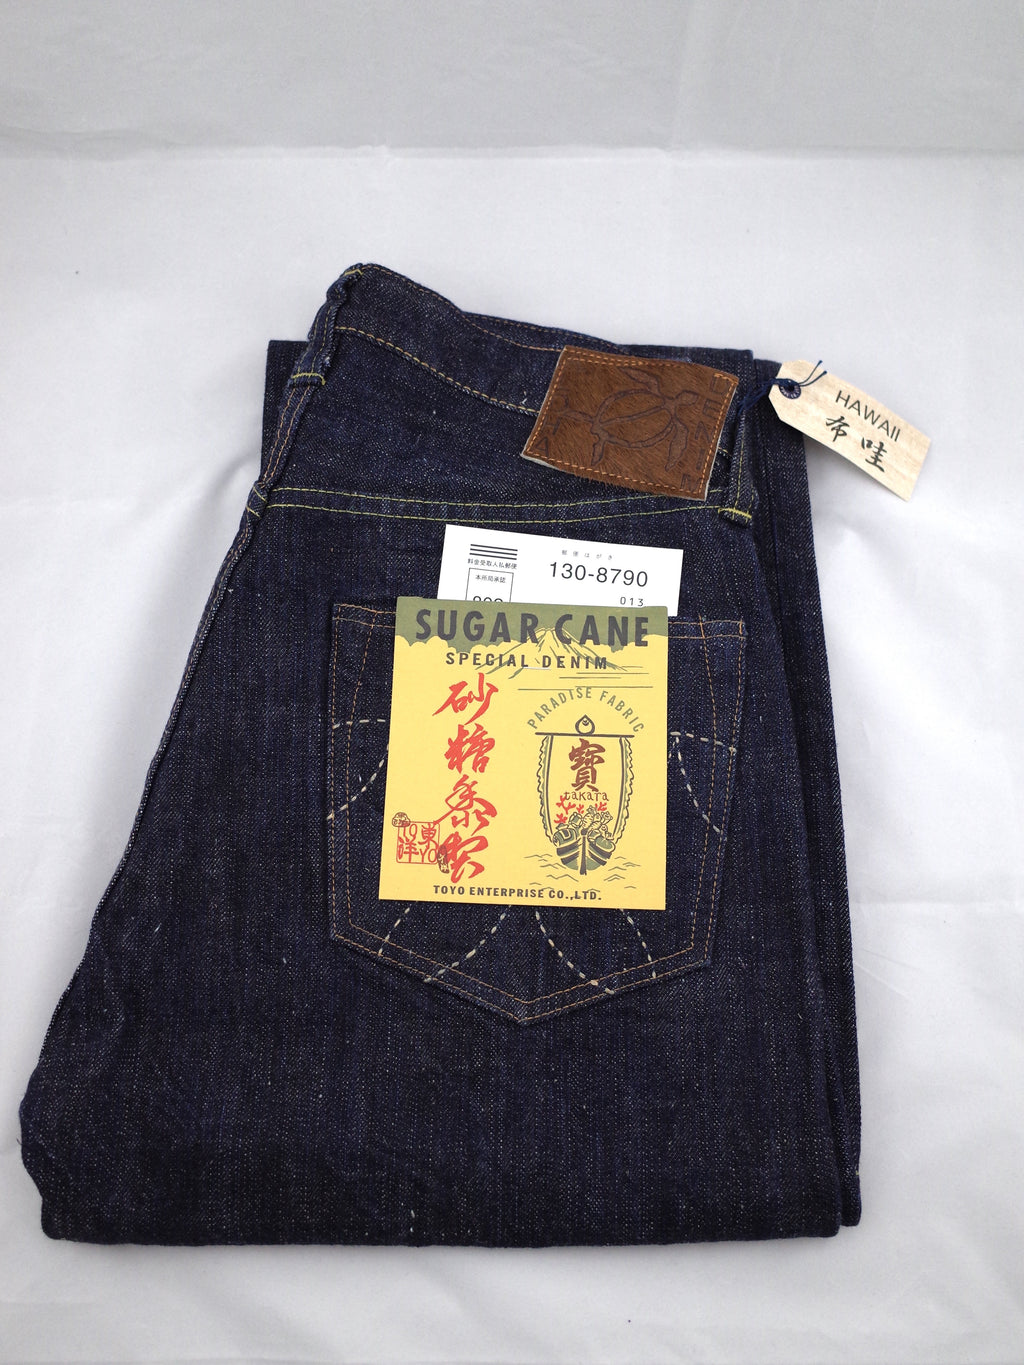 SugarCane 砂糖黍製 Hawaii Dye denim